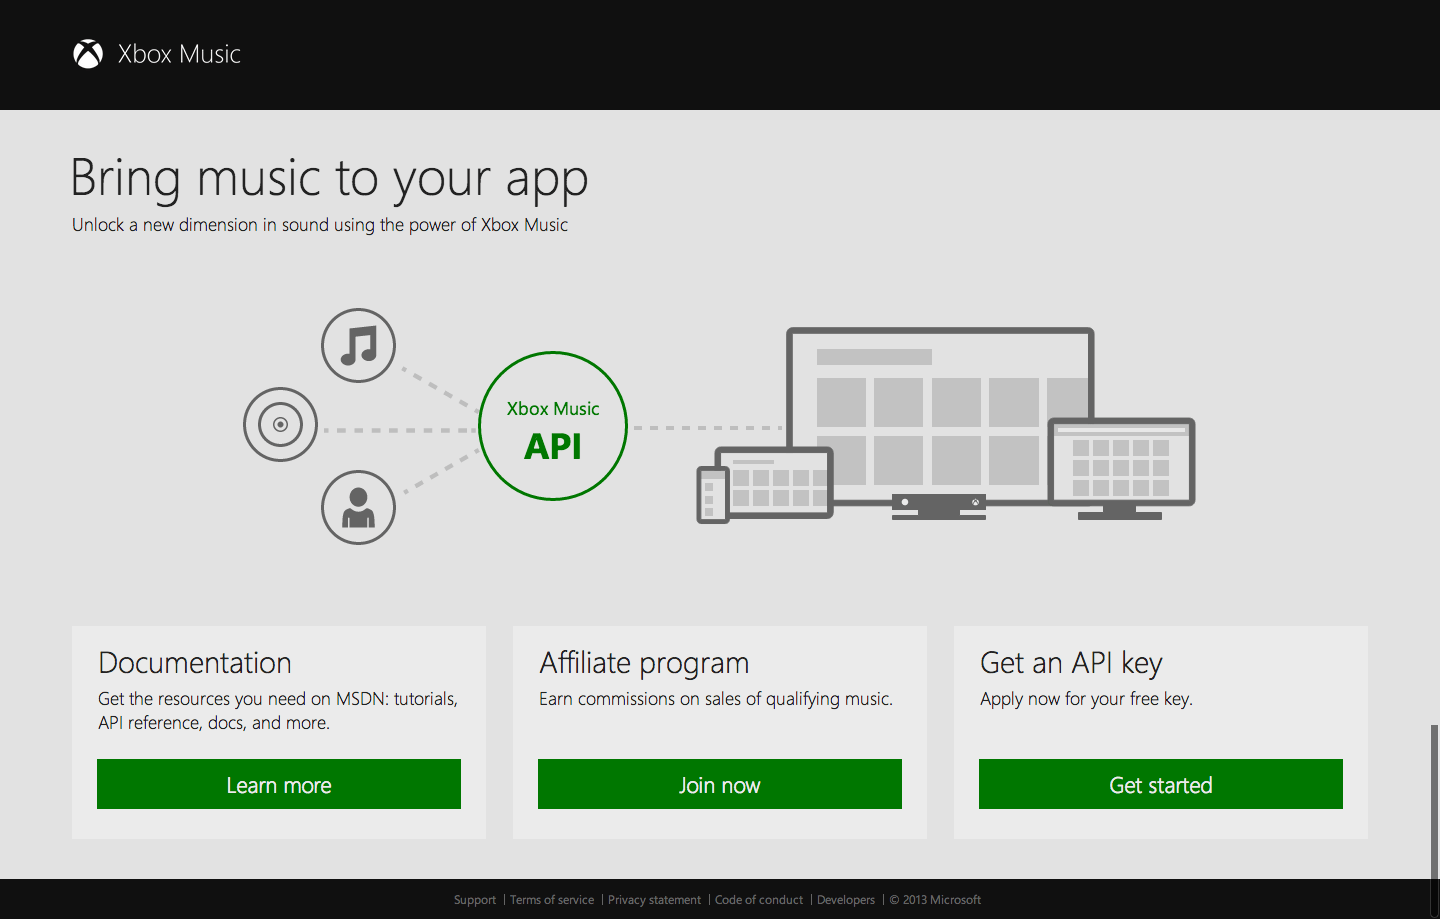 Xbox Music for developers